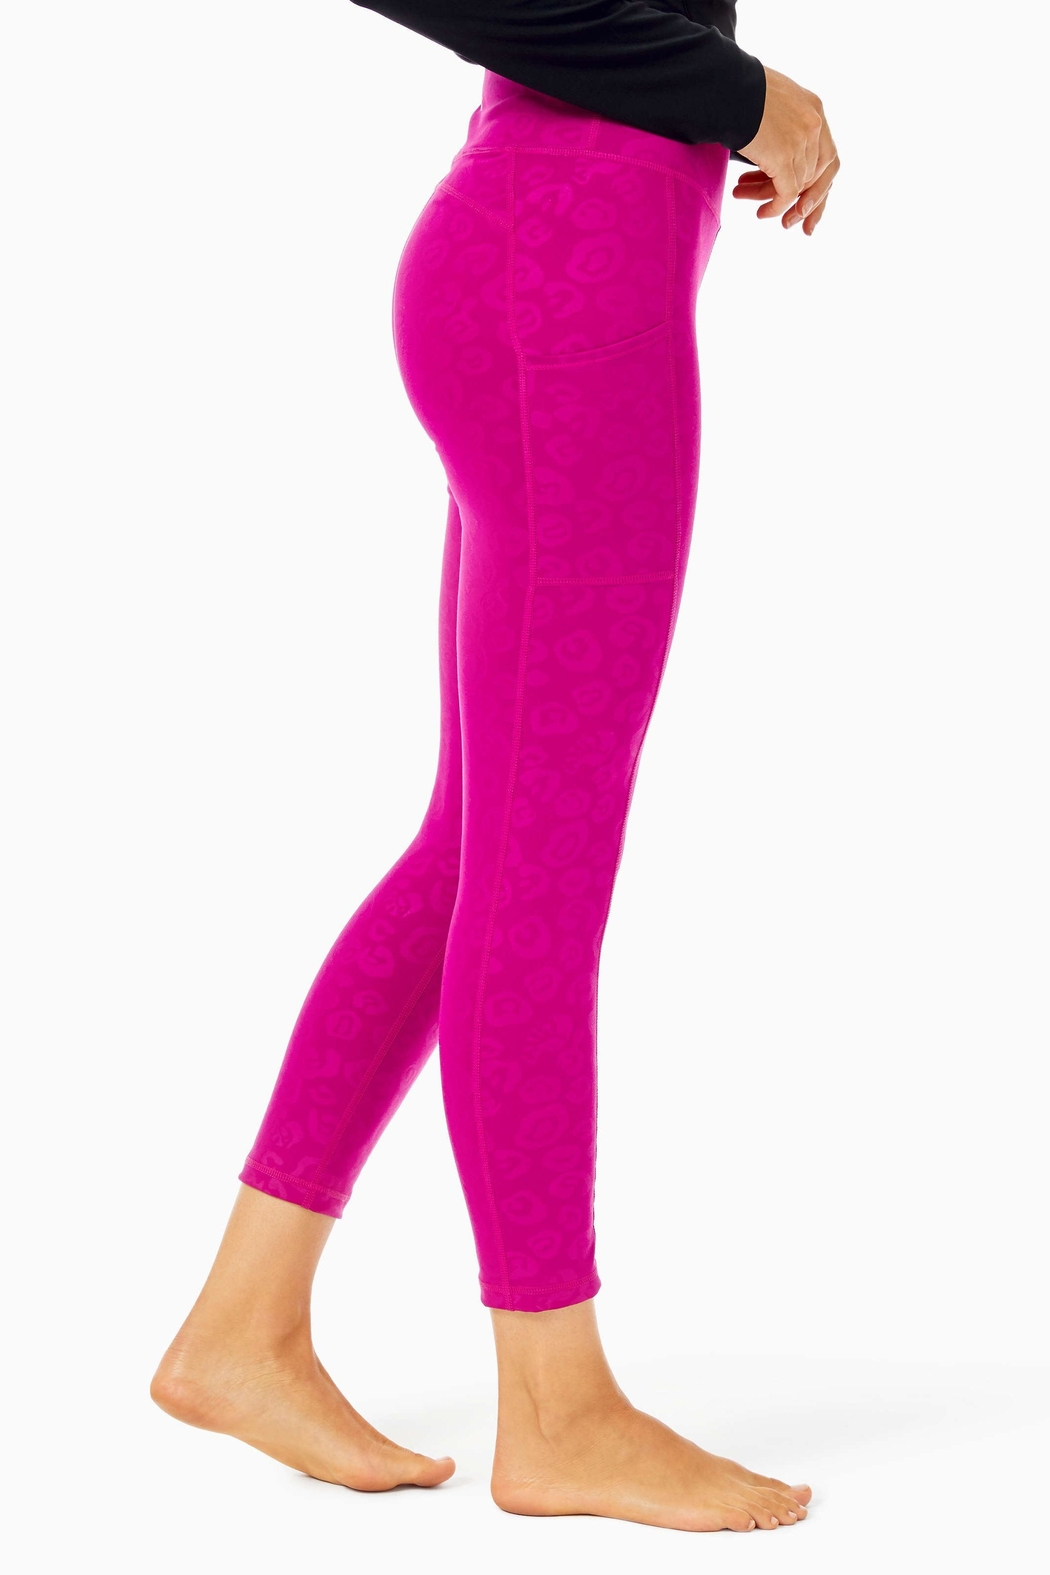 Lilly Pulitzer Weekender Midi Legging - Side Cropped Image